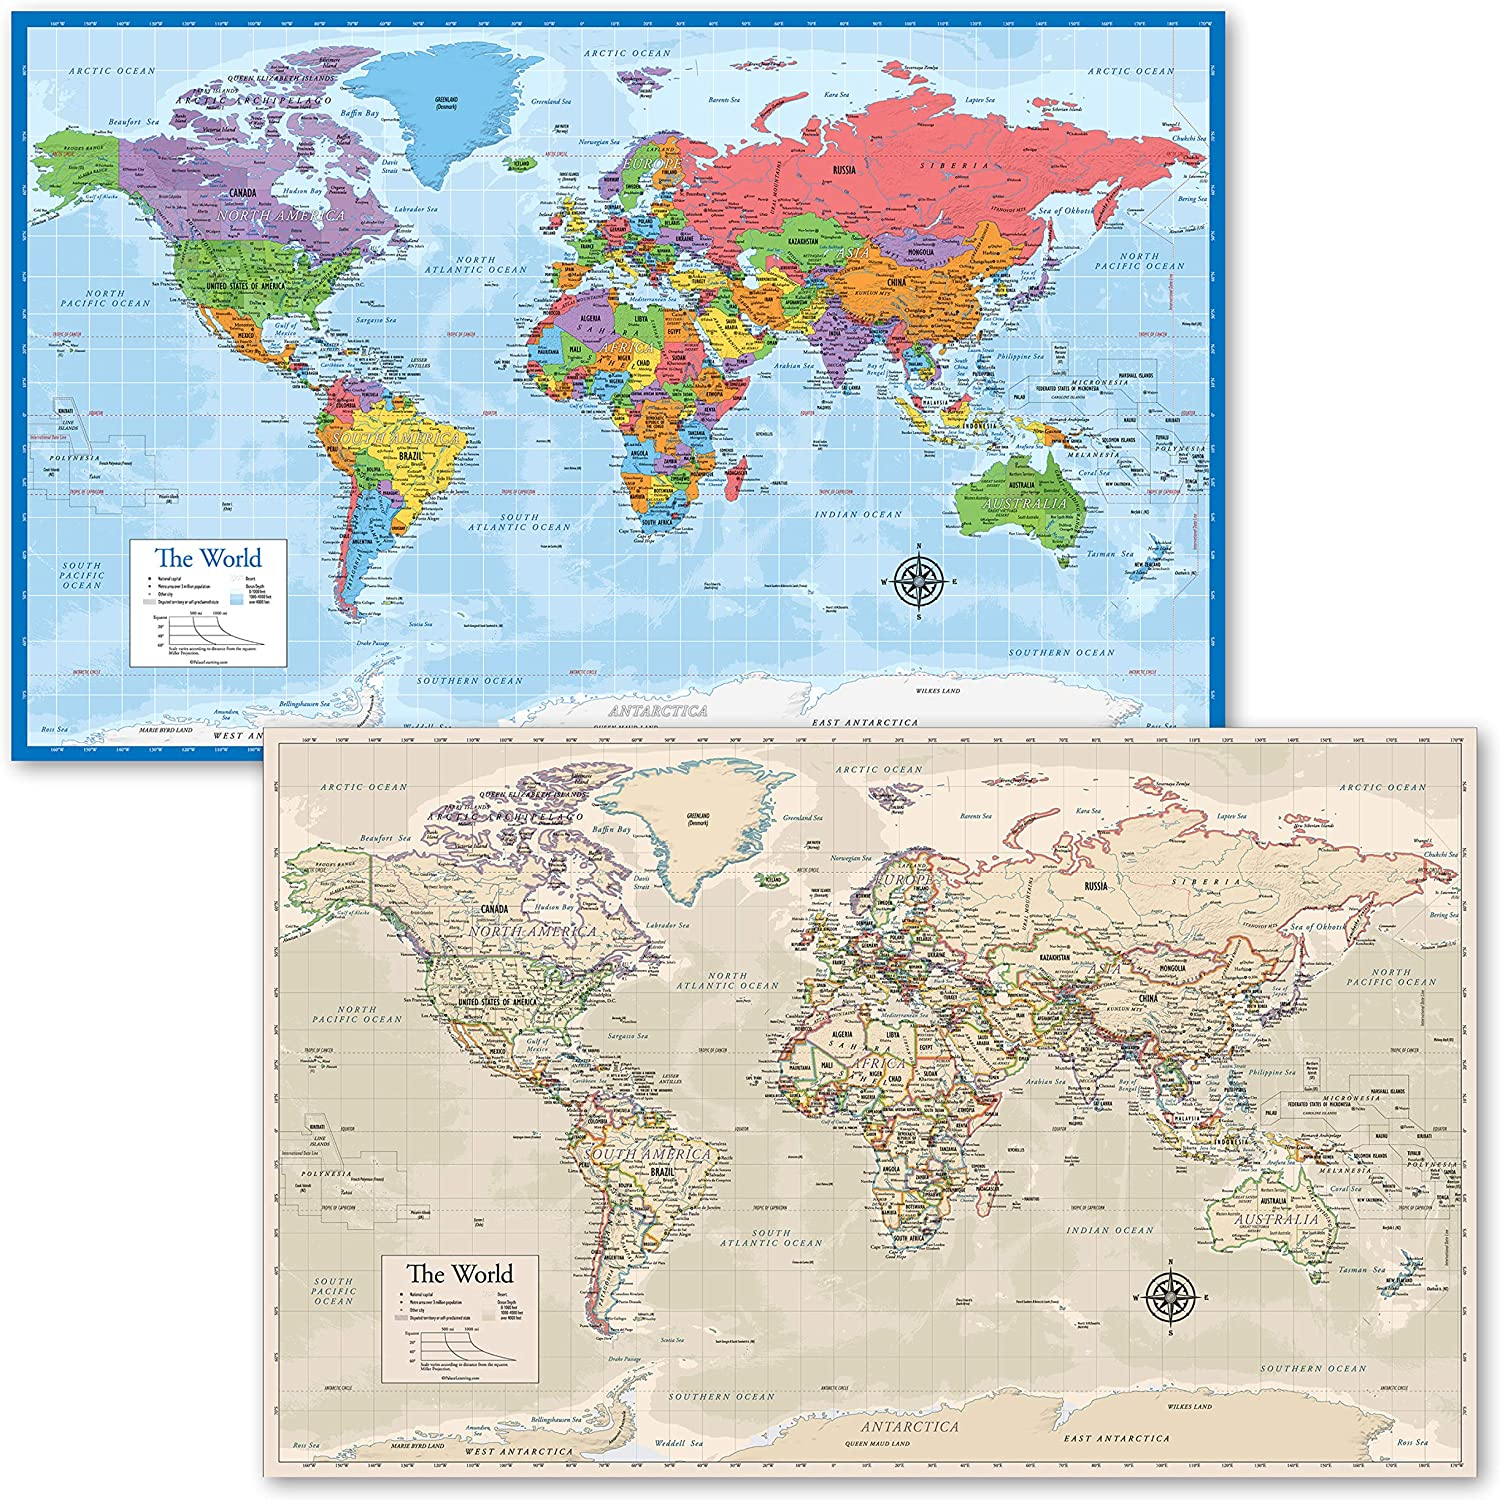 2 Pack - World Map Poster [Blue Ocean] & Antique Style World Map Chart (Laminated, 18